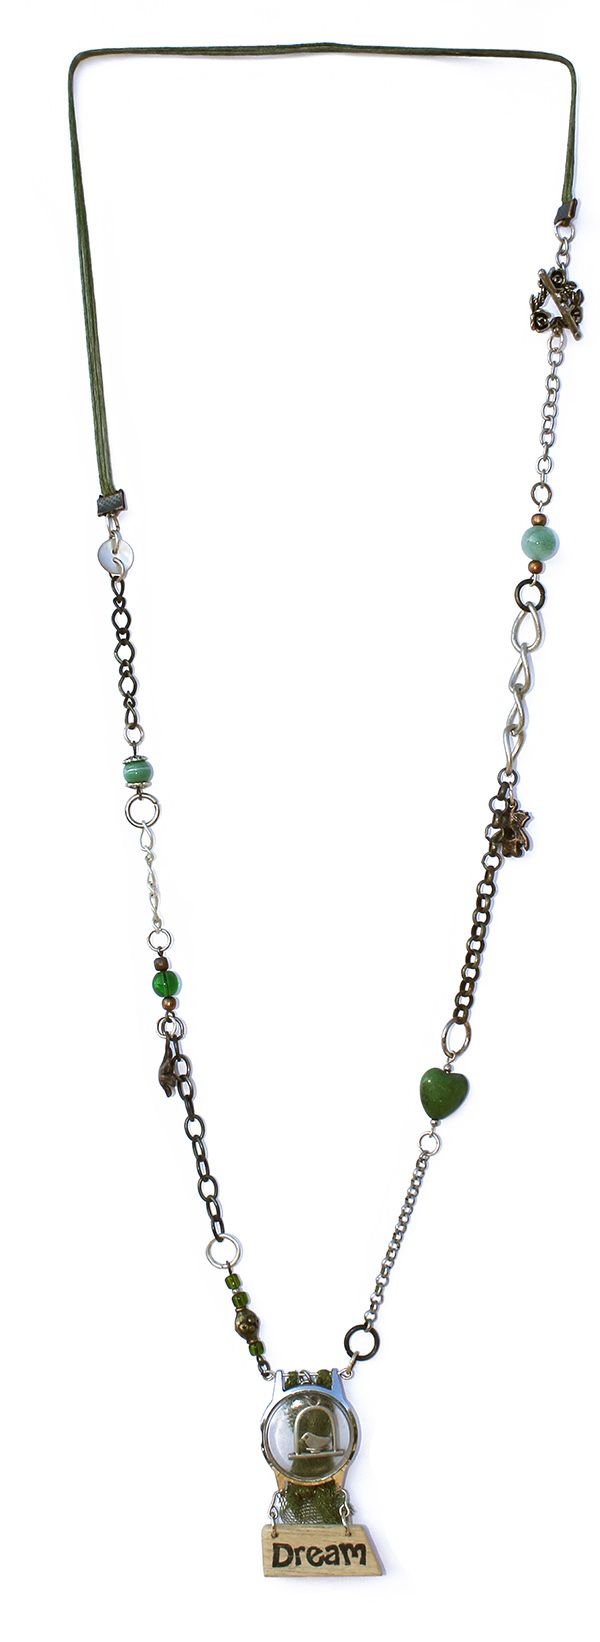 This necklace is handmade from found objects. Each upcycled necklace is a unique, one-of-a-kind, never-to-be-repeated creation.  Made by Dare to Dream, based in the Garden Route of South Africa.  www.handmadeline.co.za